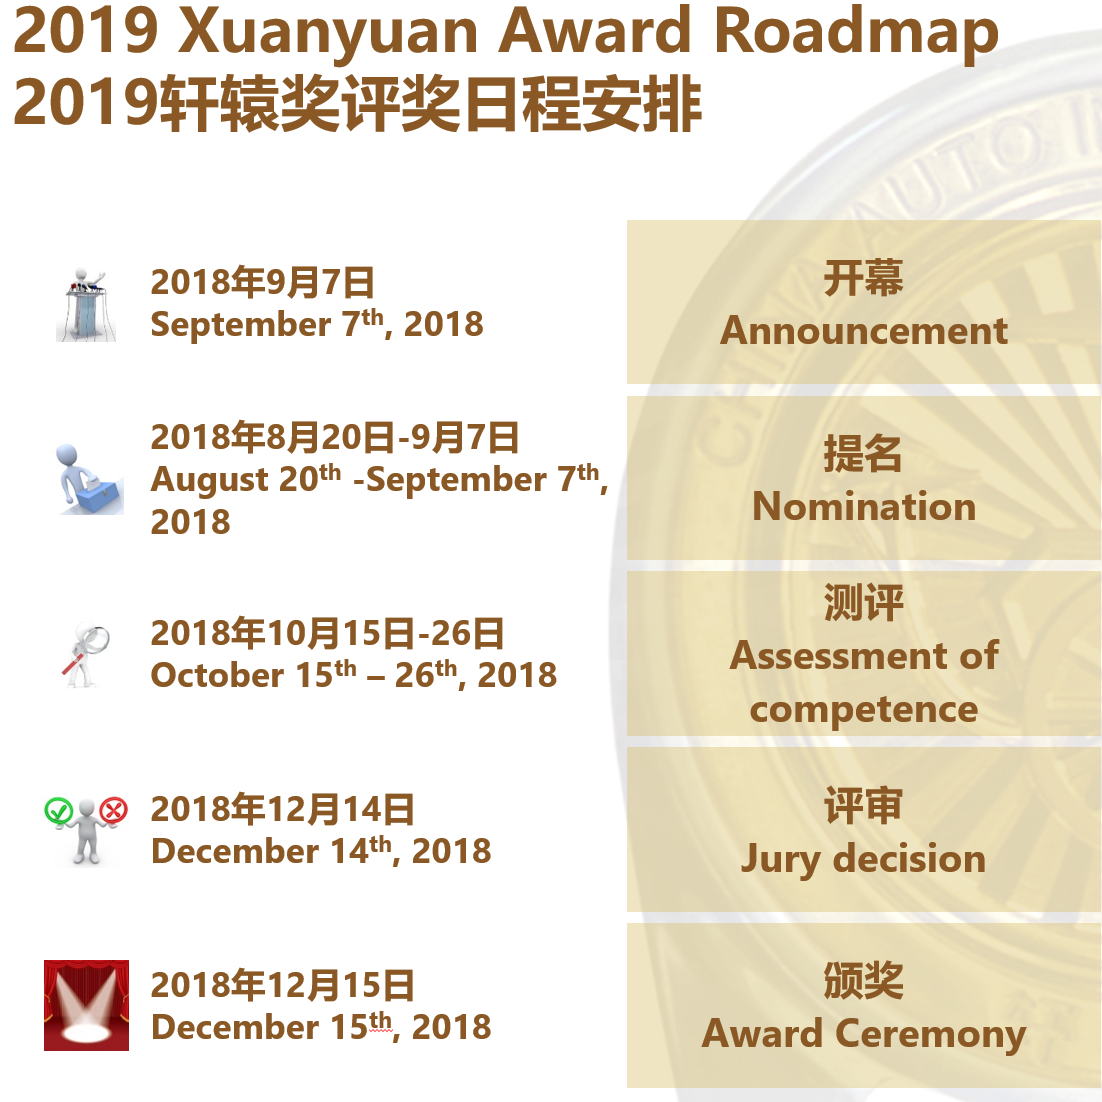 2019 Xuanyuan Award Roadmap